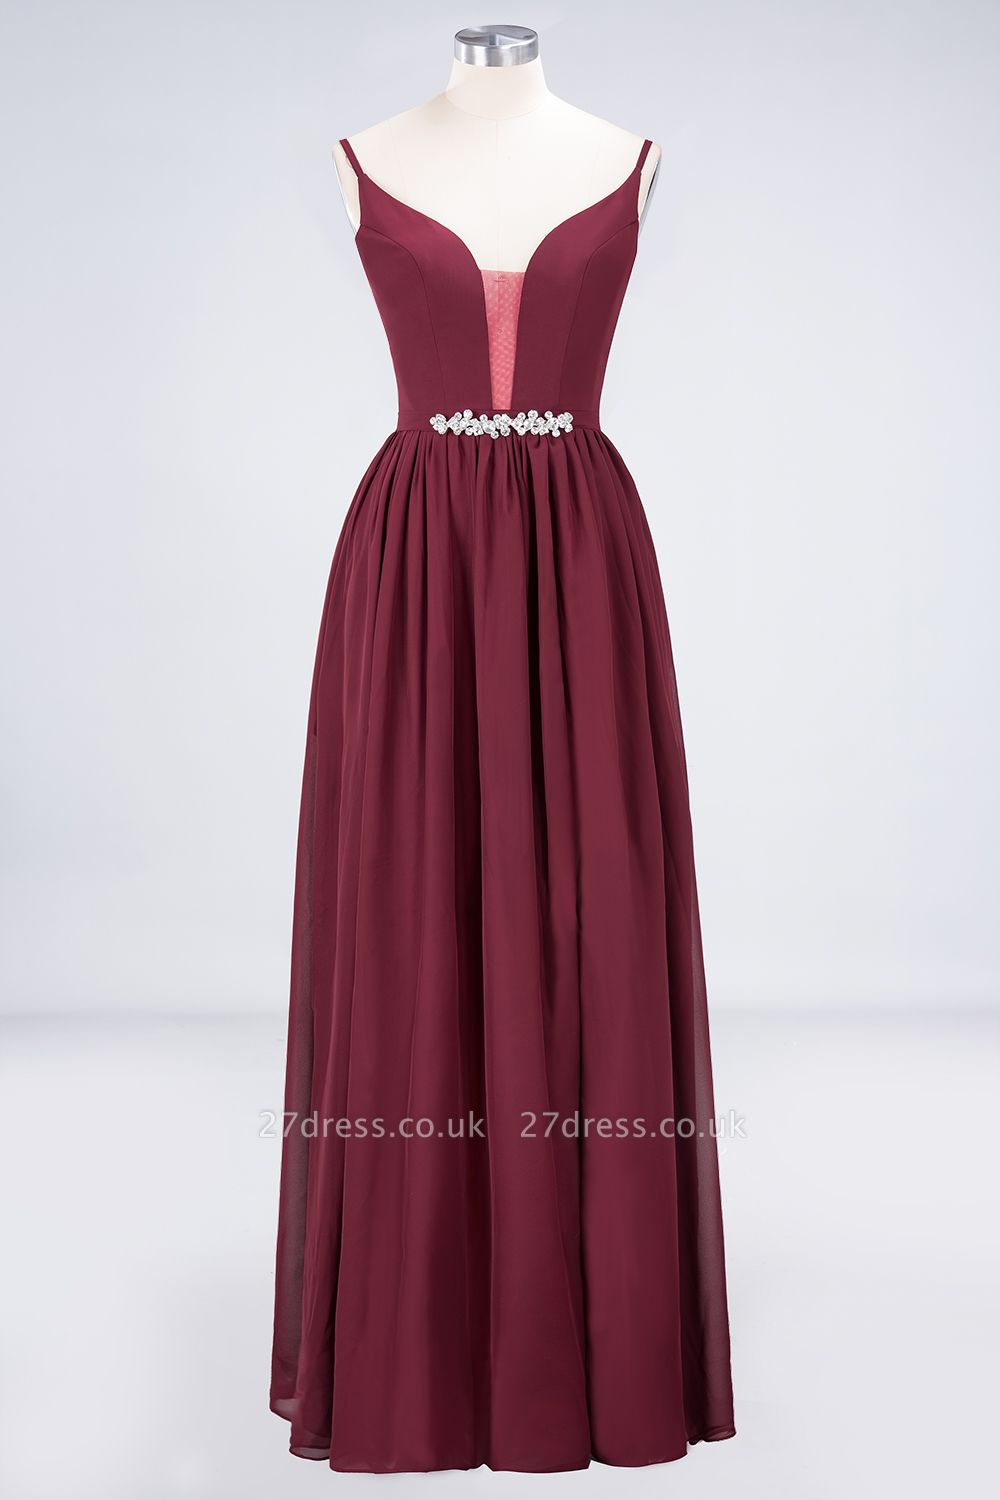 Sexy A-line Flowy Appliques Spaghetti-Straps Deep-Alluring V-neck Sleeveless Floor-Length Bridesmaid Dress UK UK with Ruffles